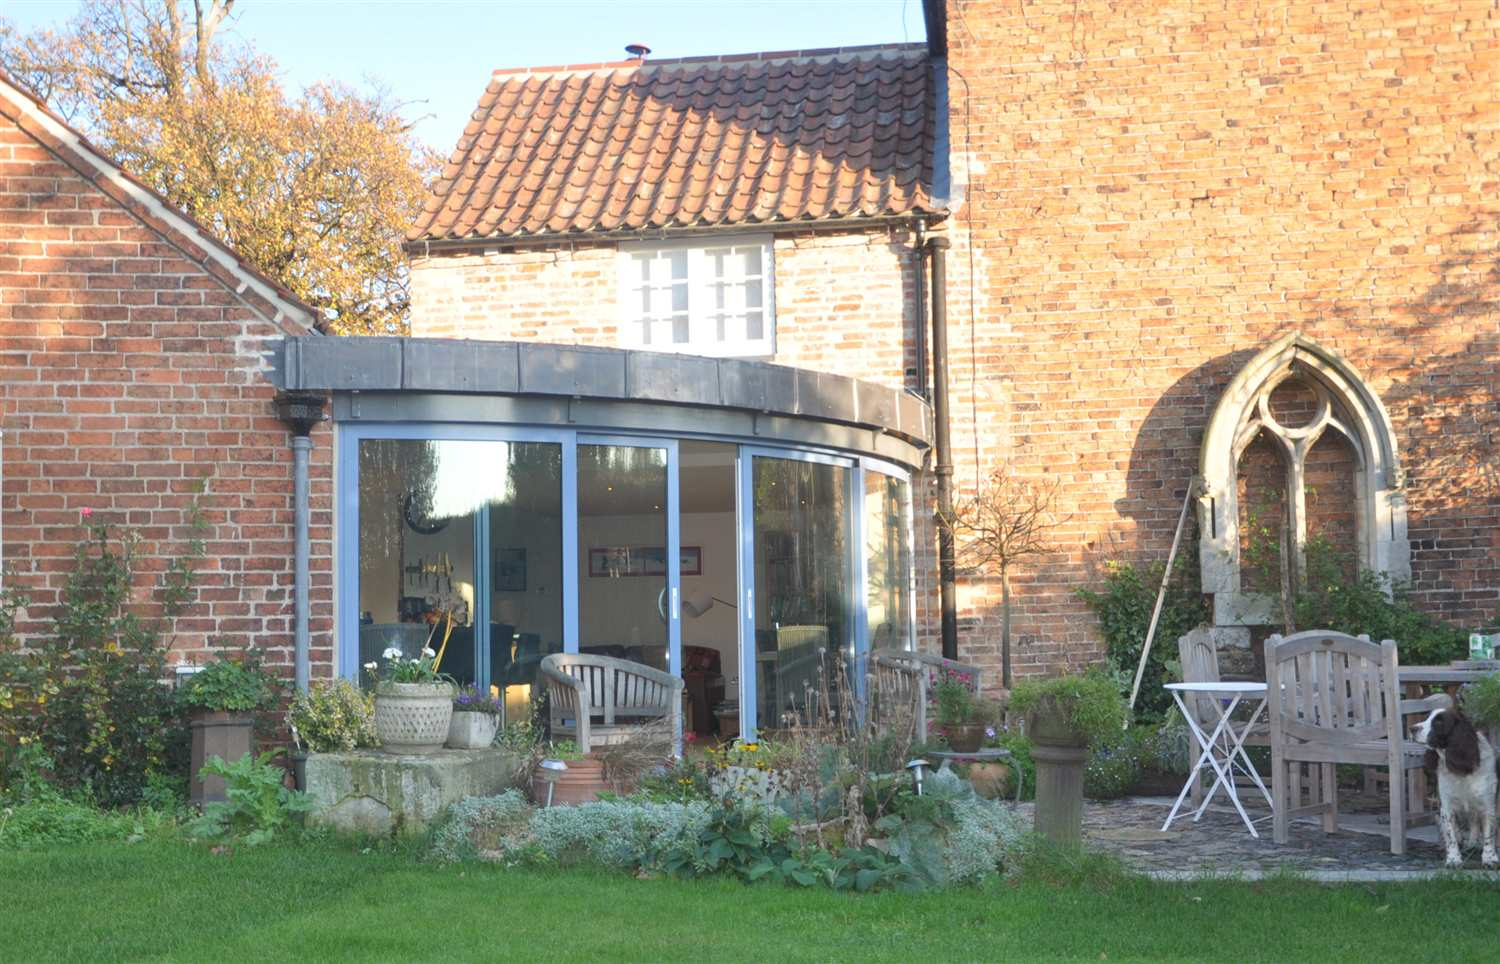 curved glass Sliding Doors on old house